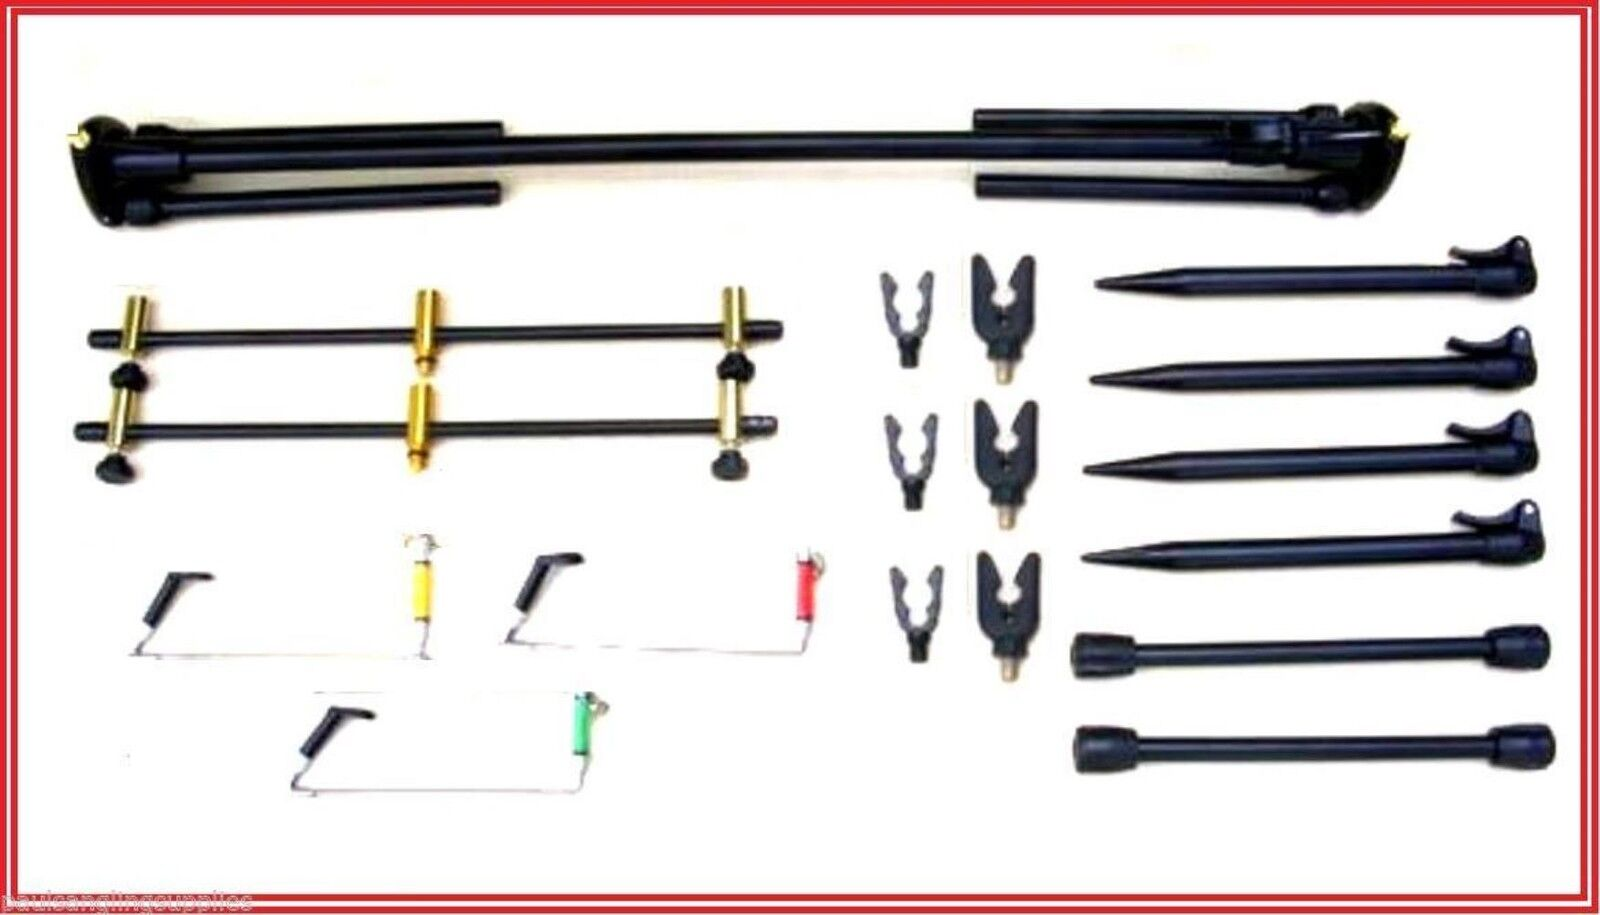 Max performance carp fishing rod pod for 3 rods for Fishing rod accessories